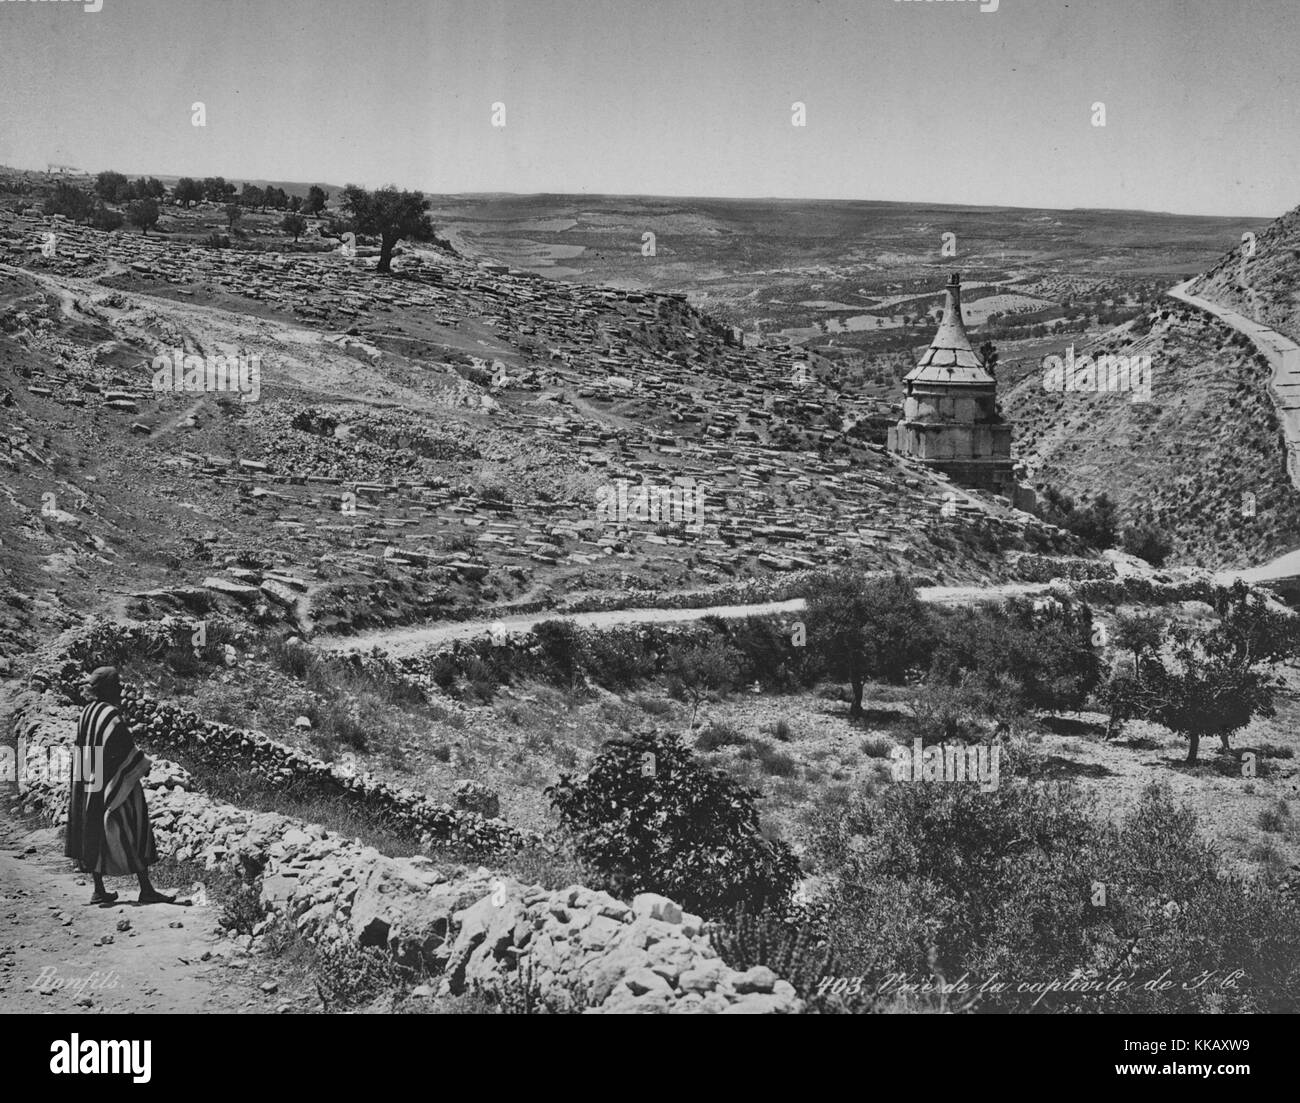 A winding dirt road cutting through the arid, rocky landscape near Jerusalem, Israel, 1900. From the New York Public - Stock Image